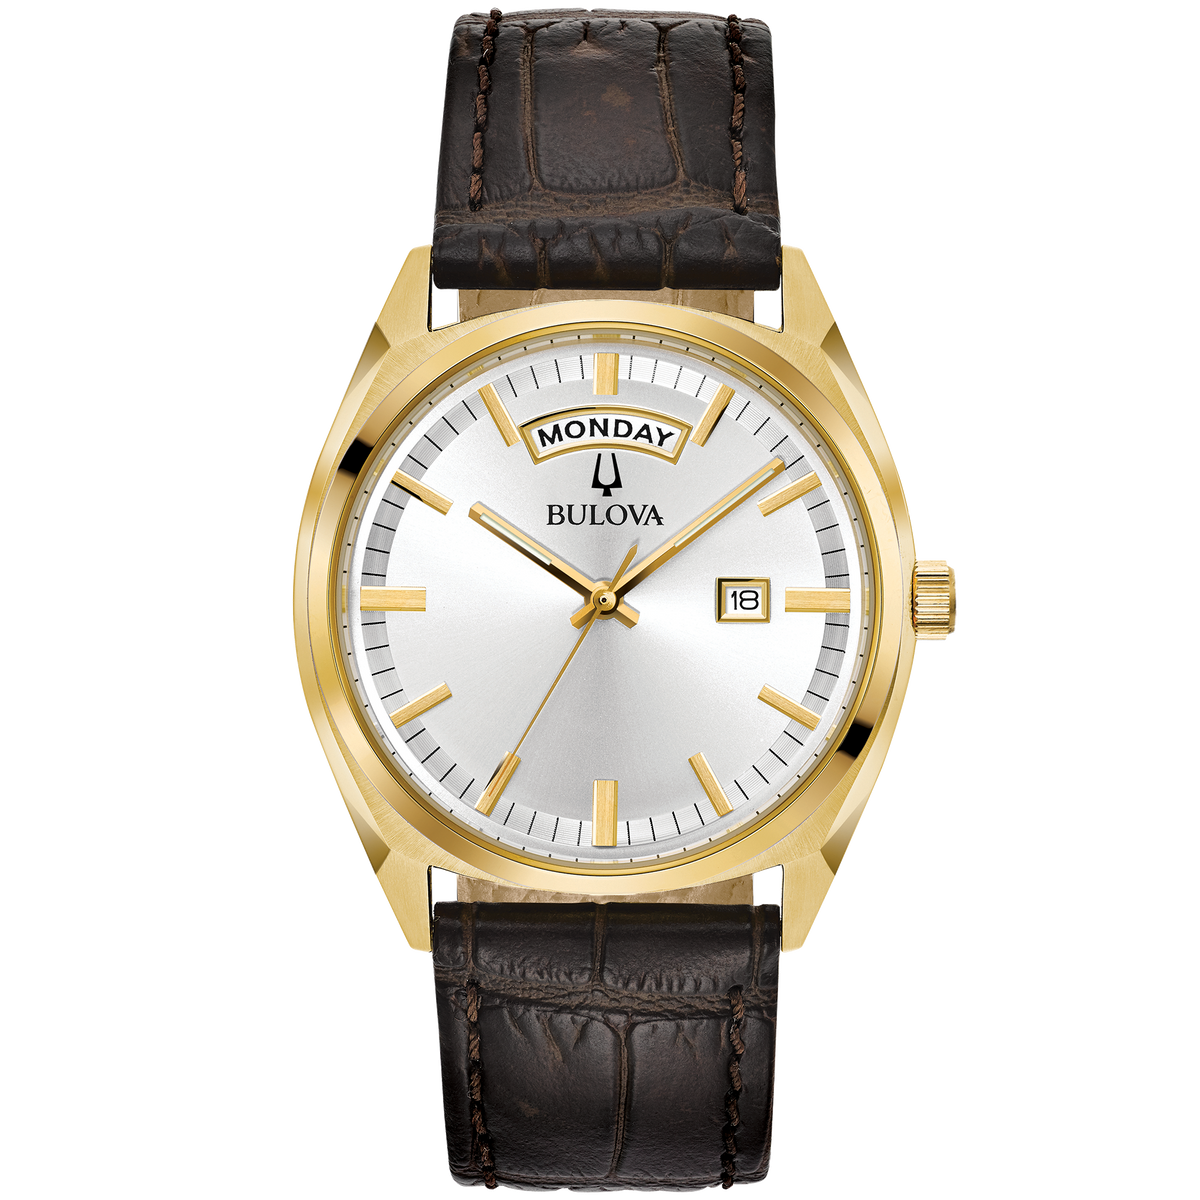 Bulova - Men's Classic Watch in Gold Tone with Day/Date